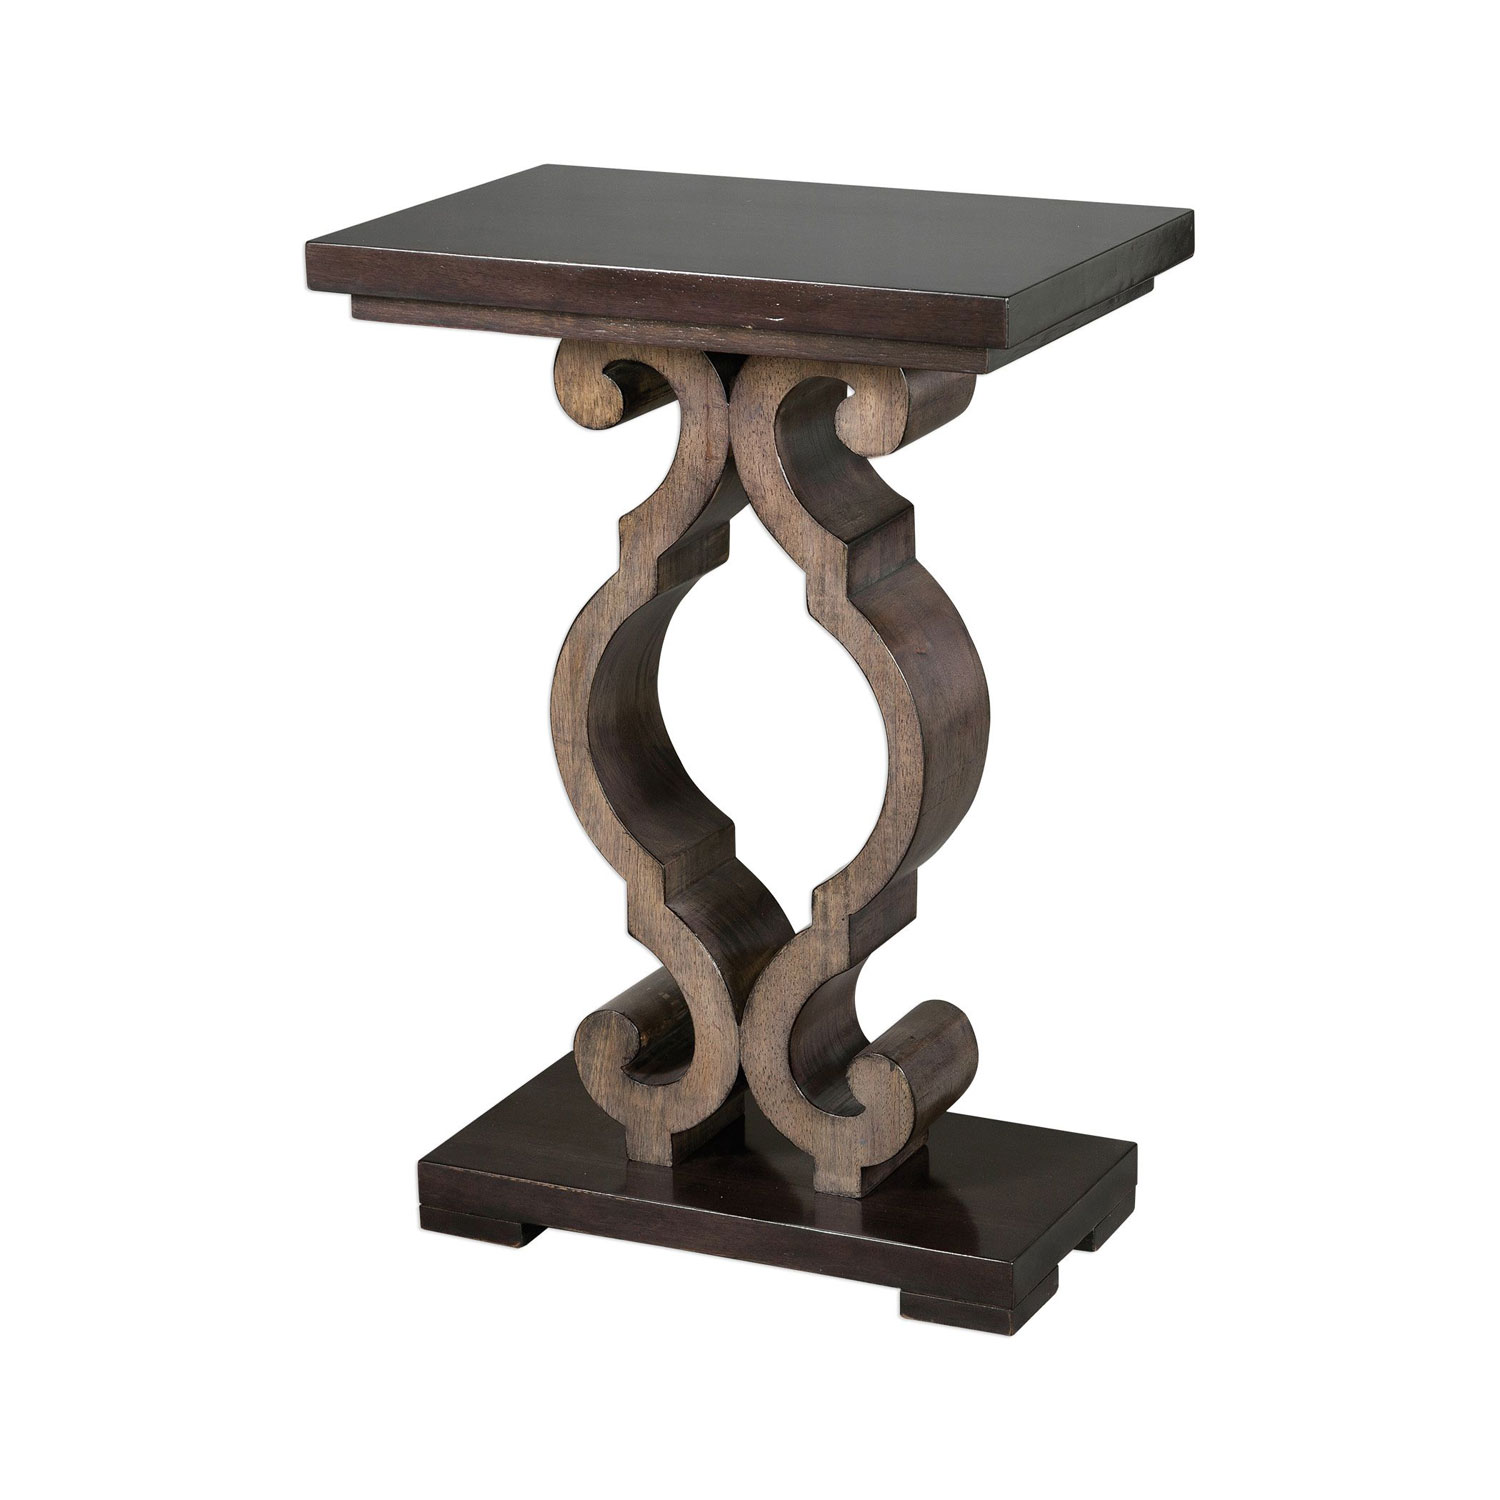 uttermost parina ebony accent table bellacor blythe hover zoom silver metal console bedside cloth maritime pendant small red end west elm owl lamp narrow cabinet trestle bench